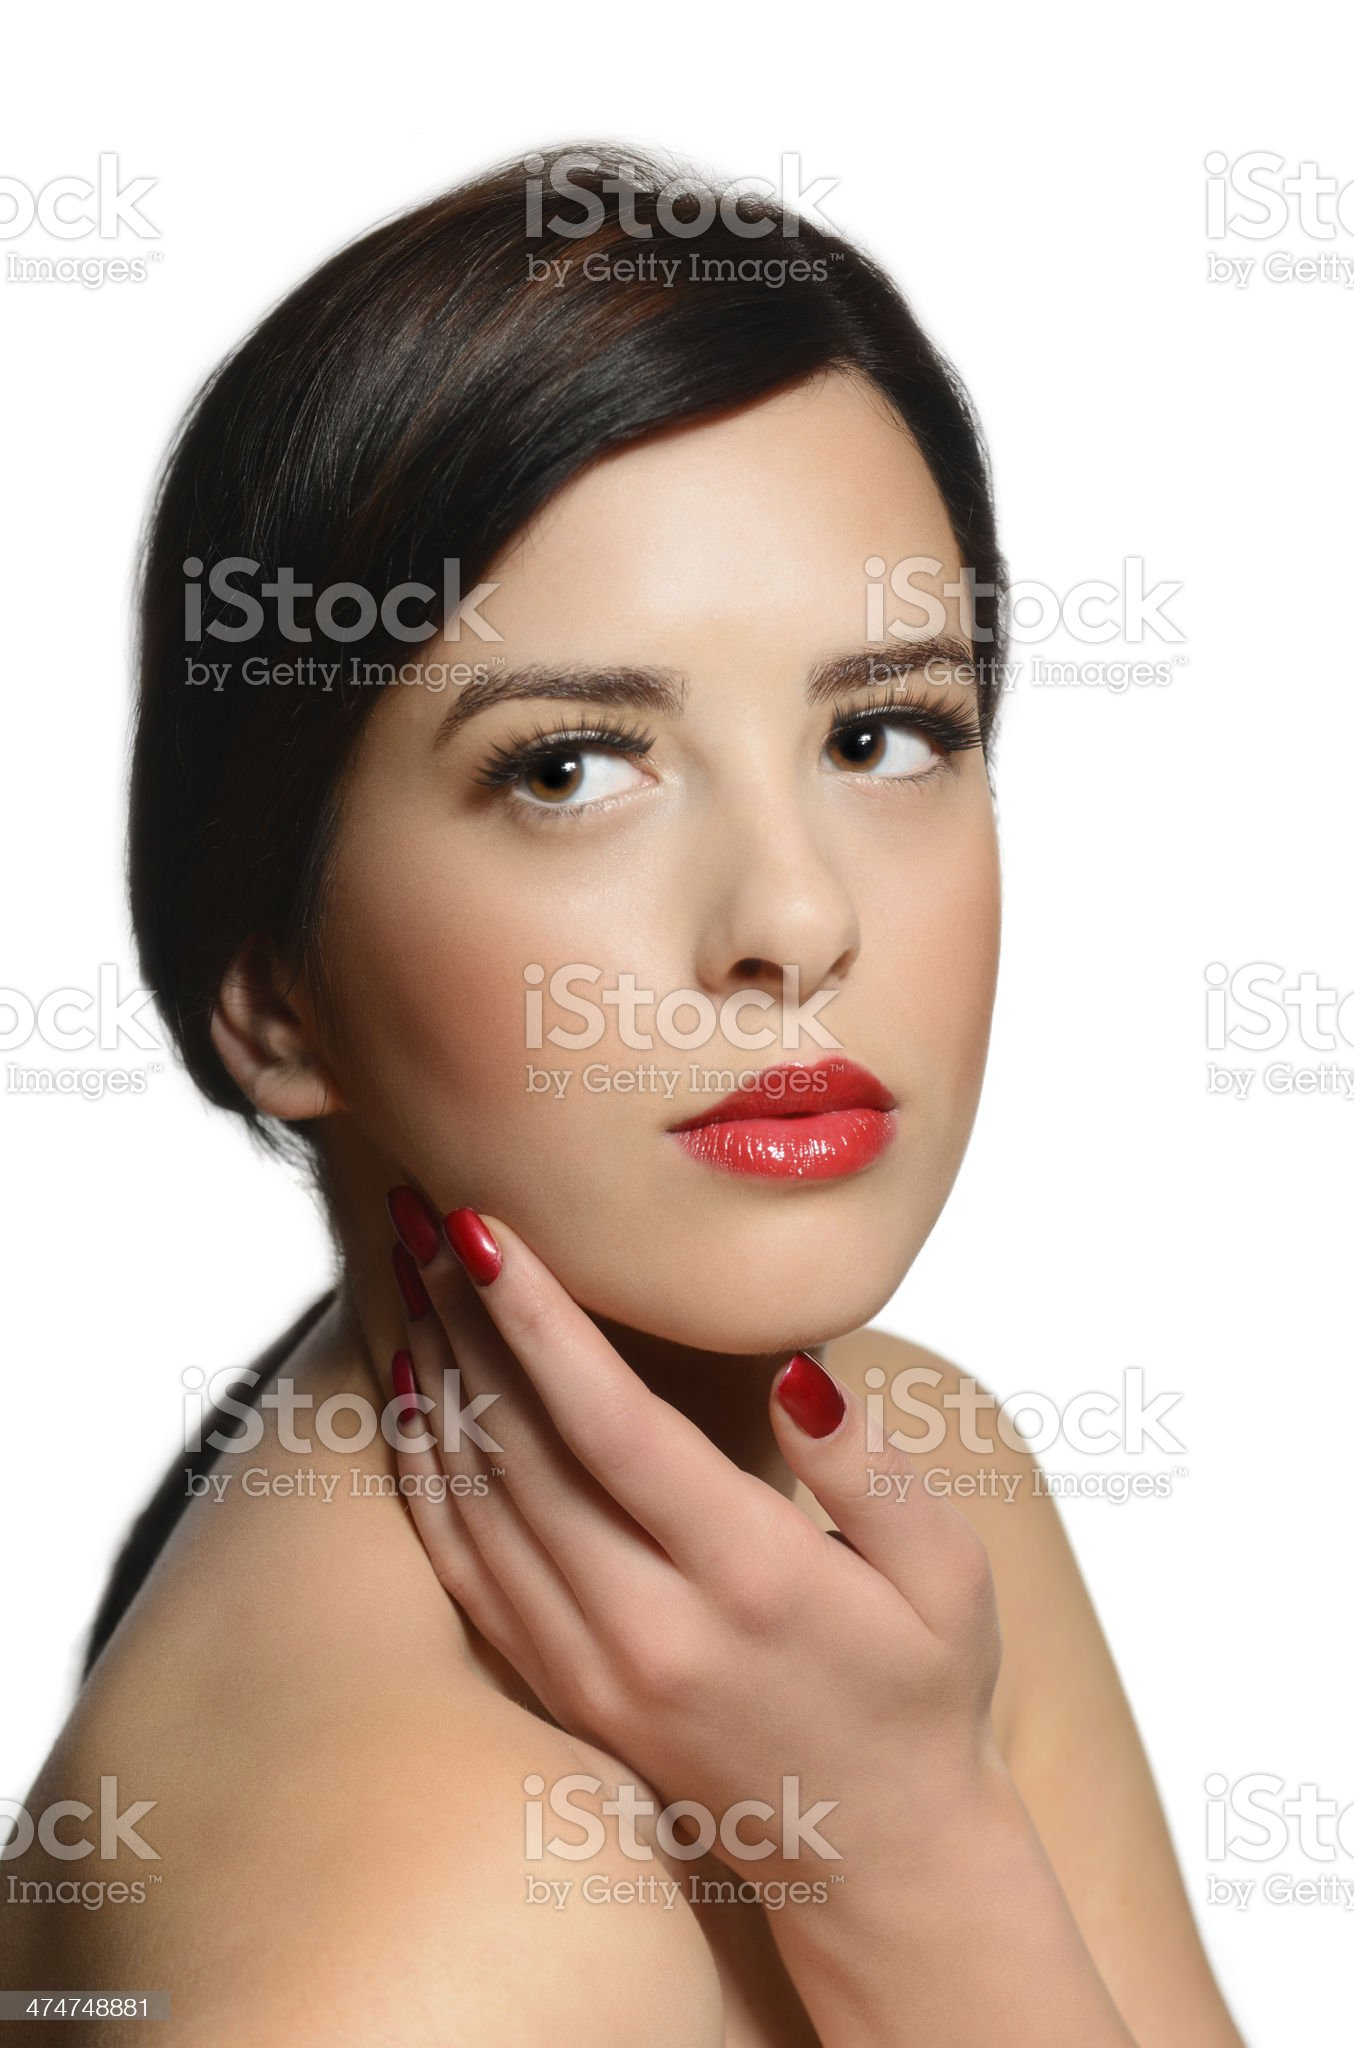 Beauty portrait of young caucasian woman holding with red lipstick royalty-free stock photo